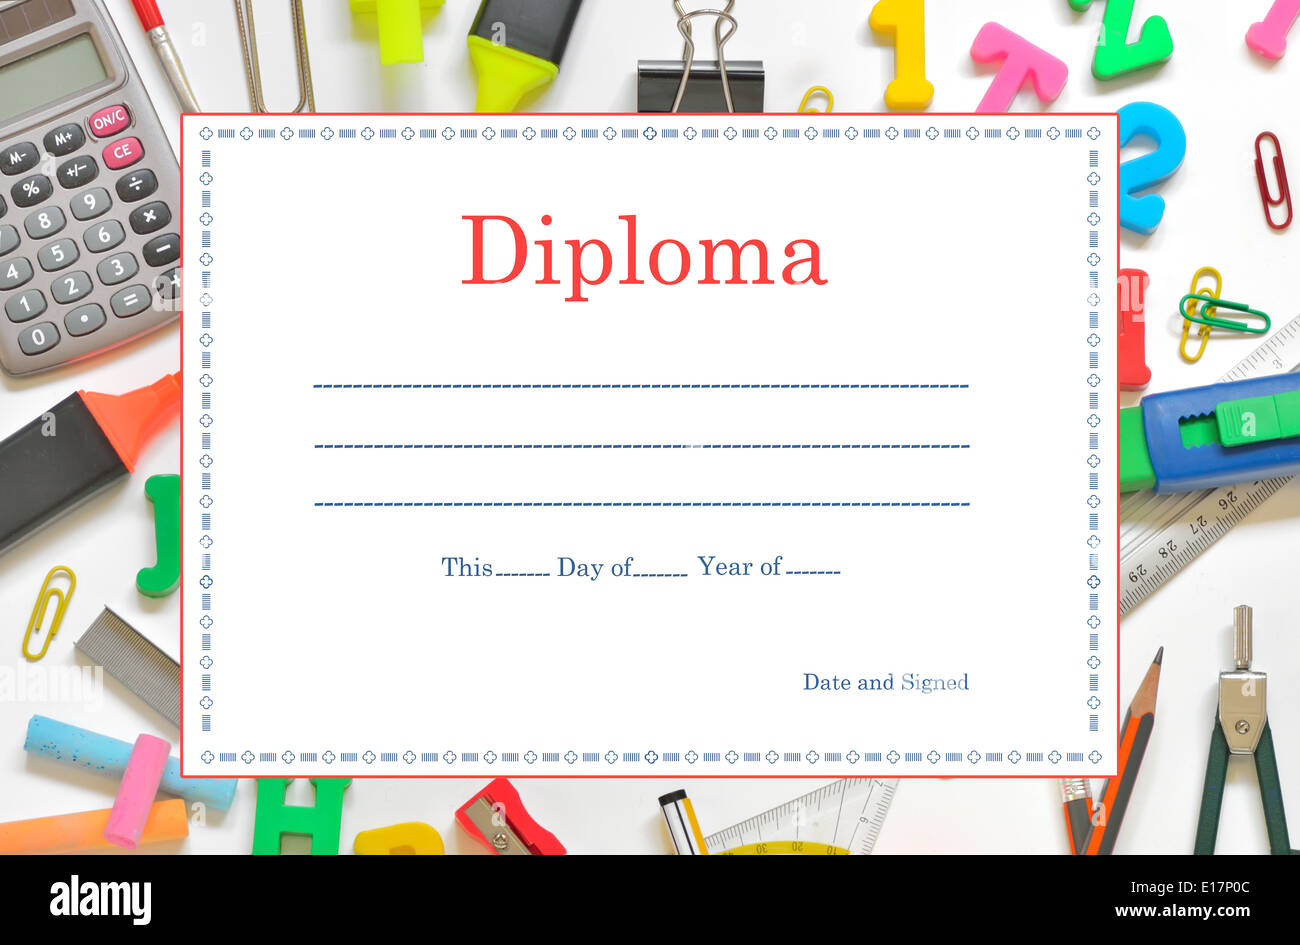 Template School Diploma for Children - Stock Image